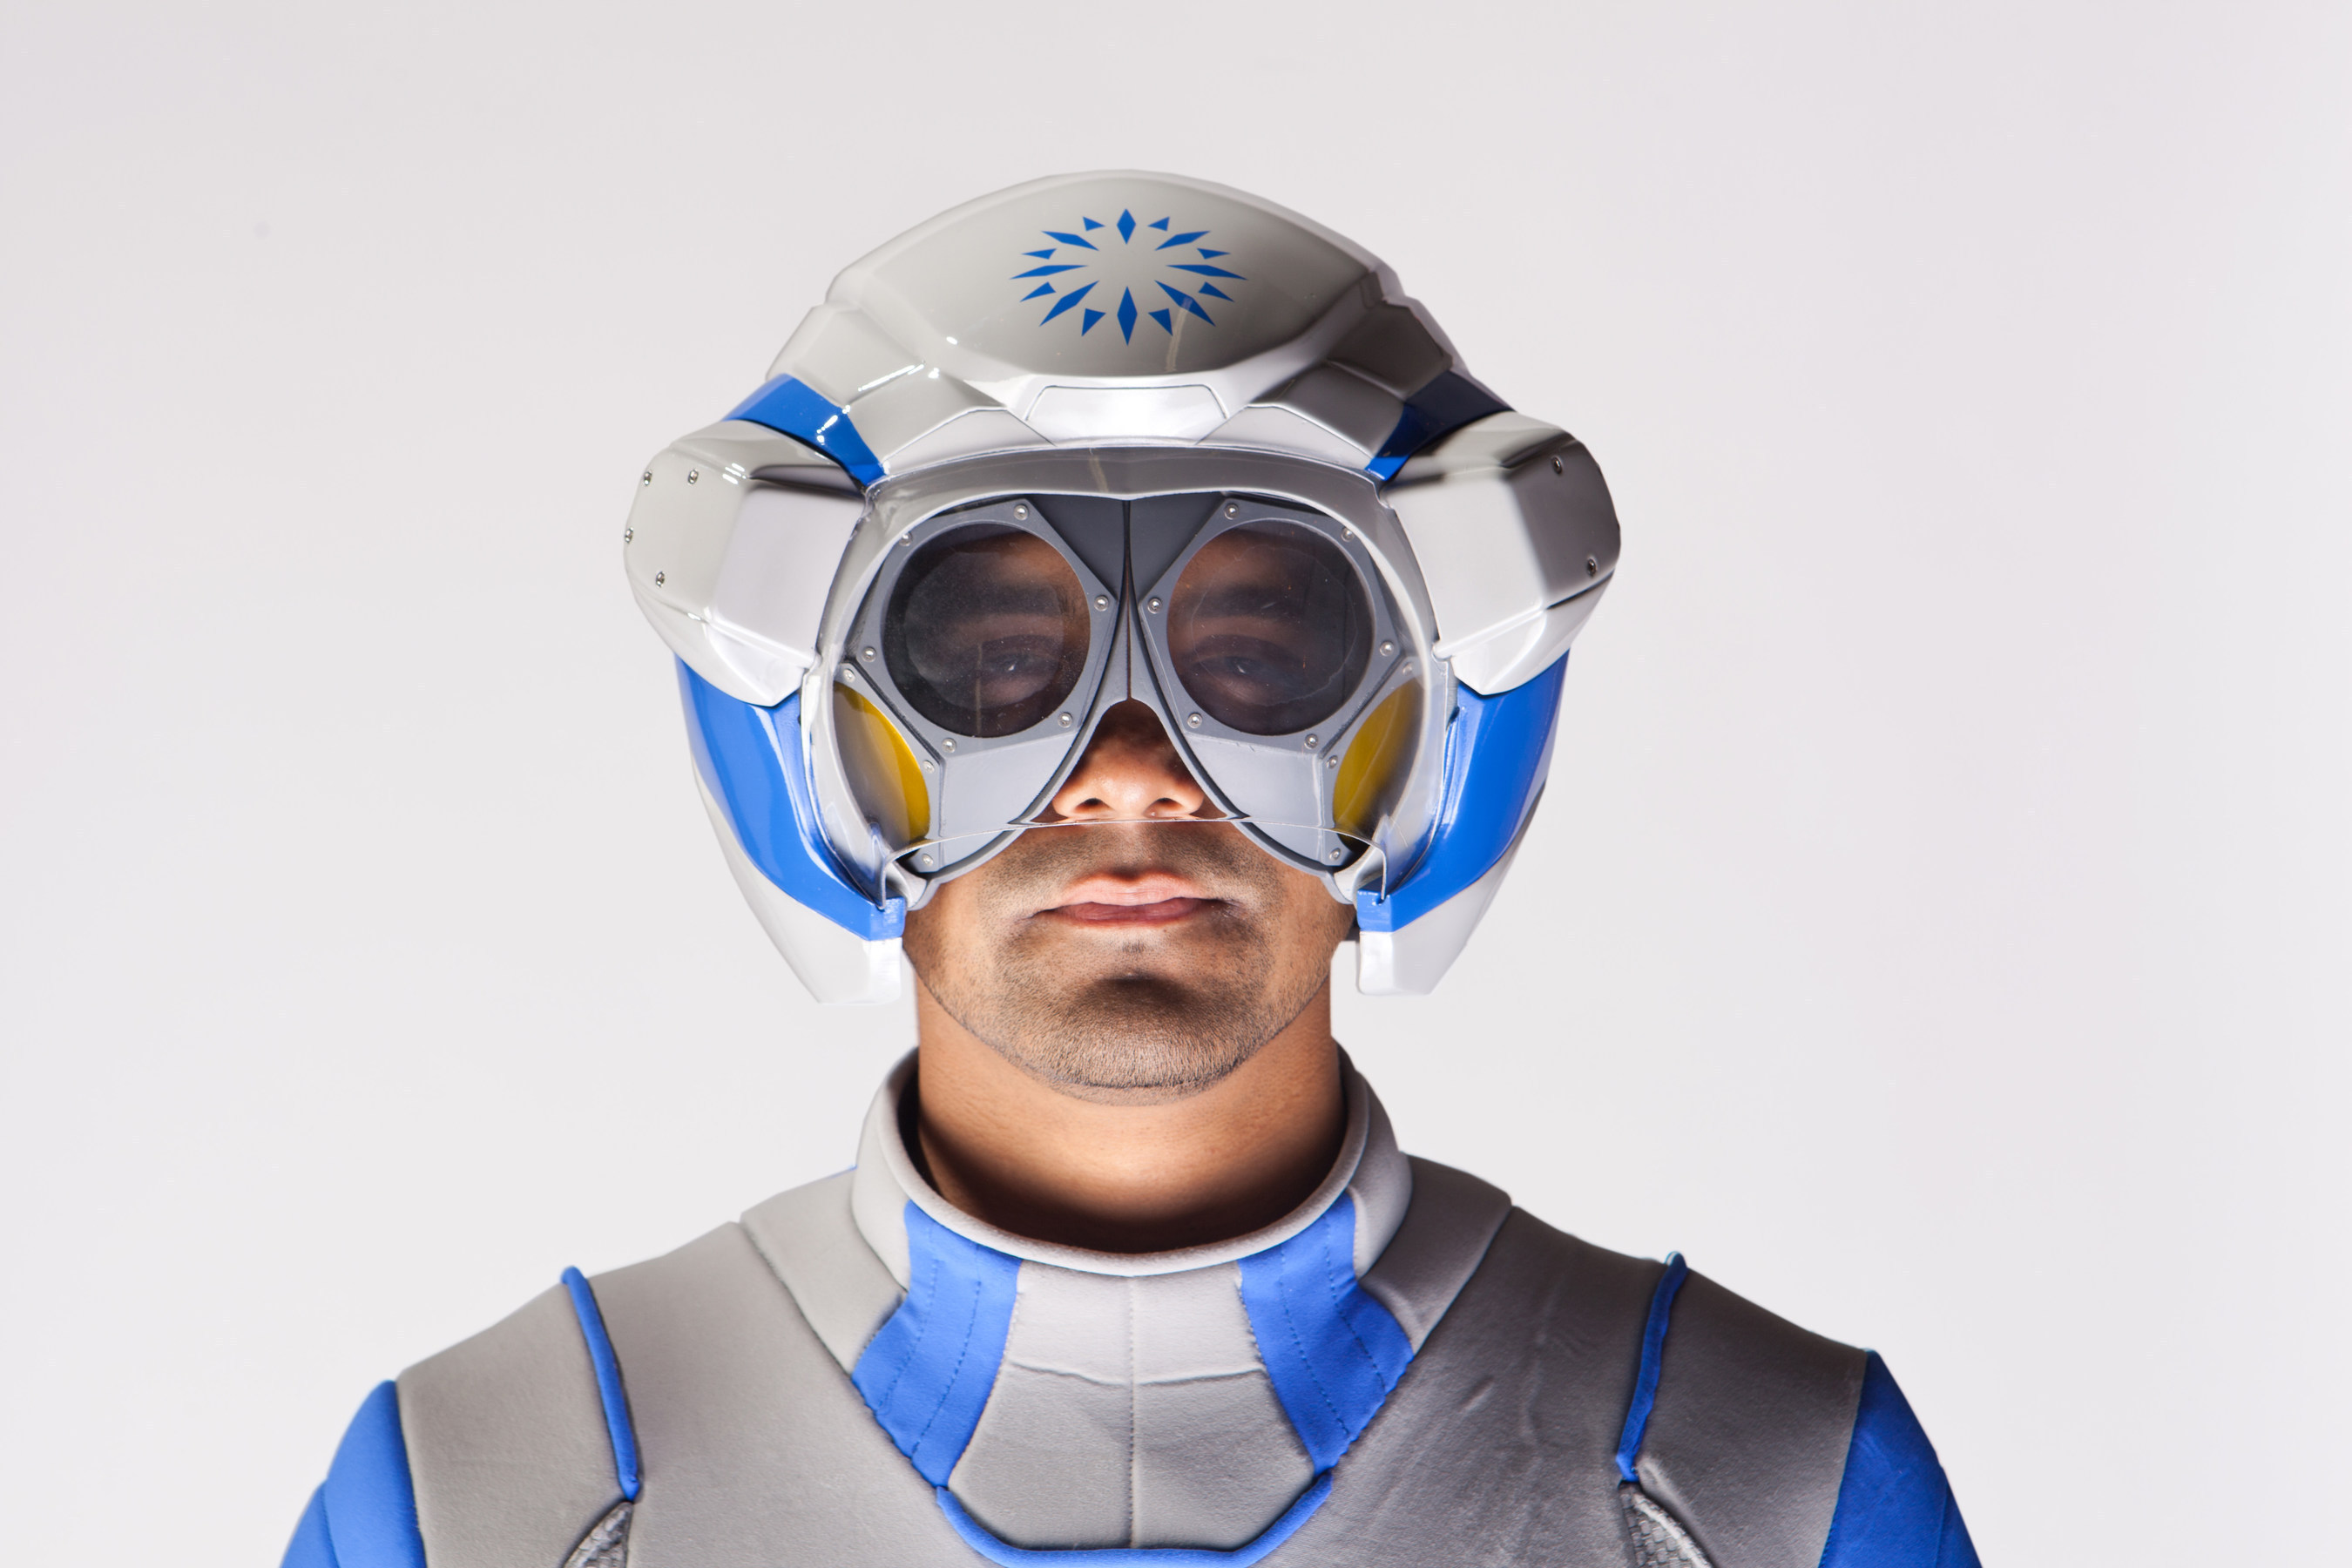 The Genworth R70, a first of its kind, state of the art, age simulation suit, features a helmet with acoustic muffling that gives the effect of hearing loss that often occurs with aging as well as lenses that simulate declines in vision plus the common vision disorders that occur with aging.  Genworth developed the suit to help raise awareness about the need for long term care planning and educate the public on the physical effects associated with aging. Genworth unveiled the suit on Thursday, Nov. 20, 2014, at the Social Innovation Summit in Silicon Valley, California.